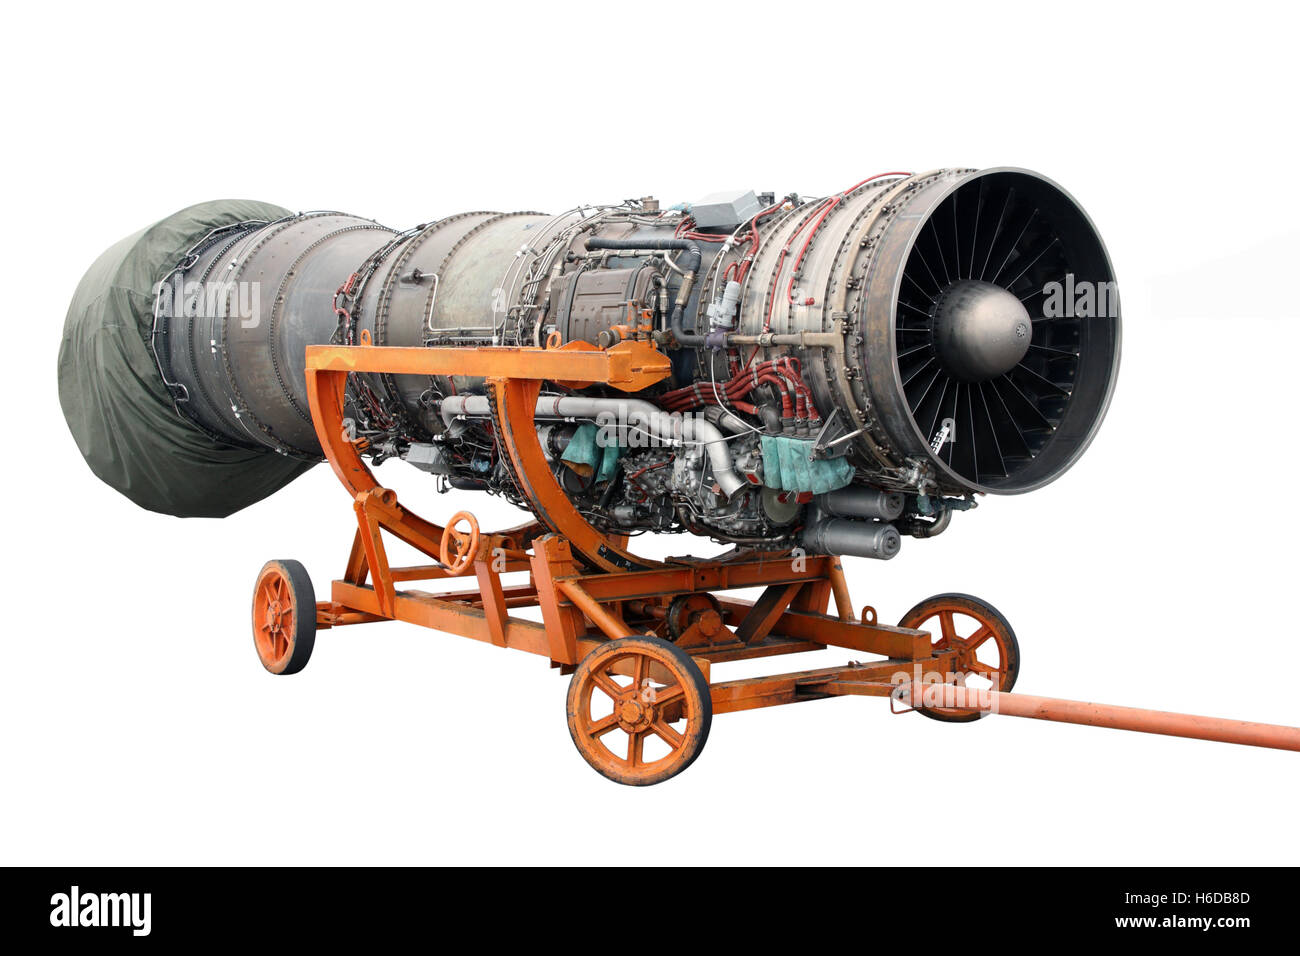 Transportation of the engine of the jet plane Stock Photo